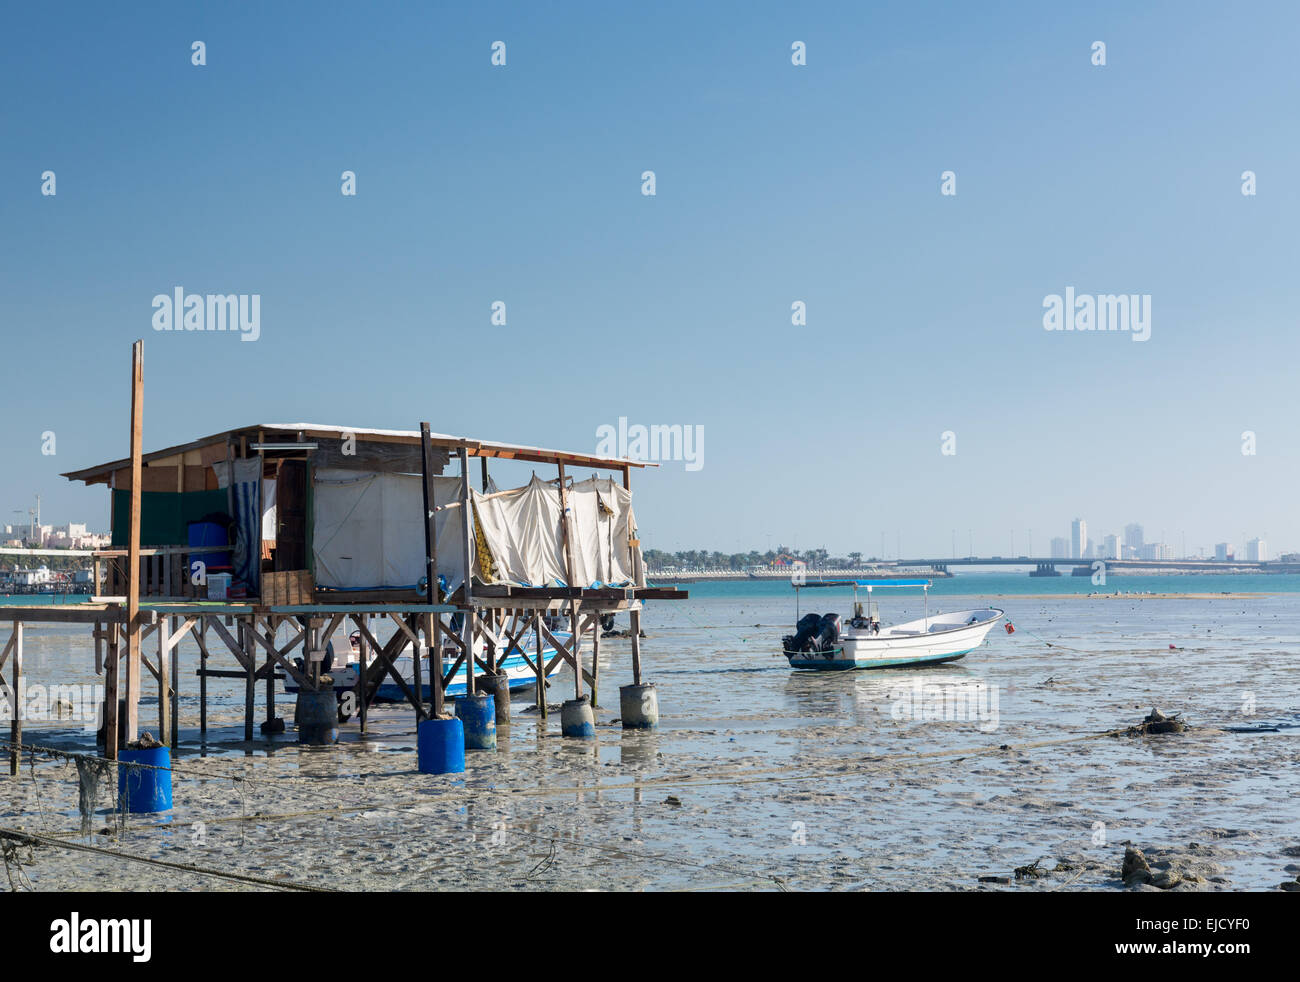 Fishermans shack on waterfront in Bahrain - Stock Image